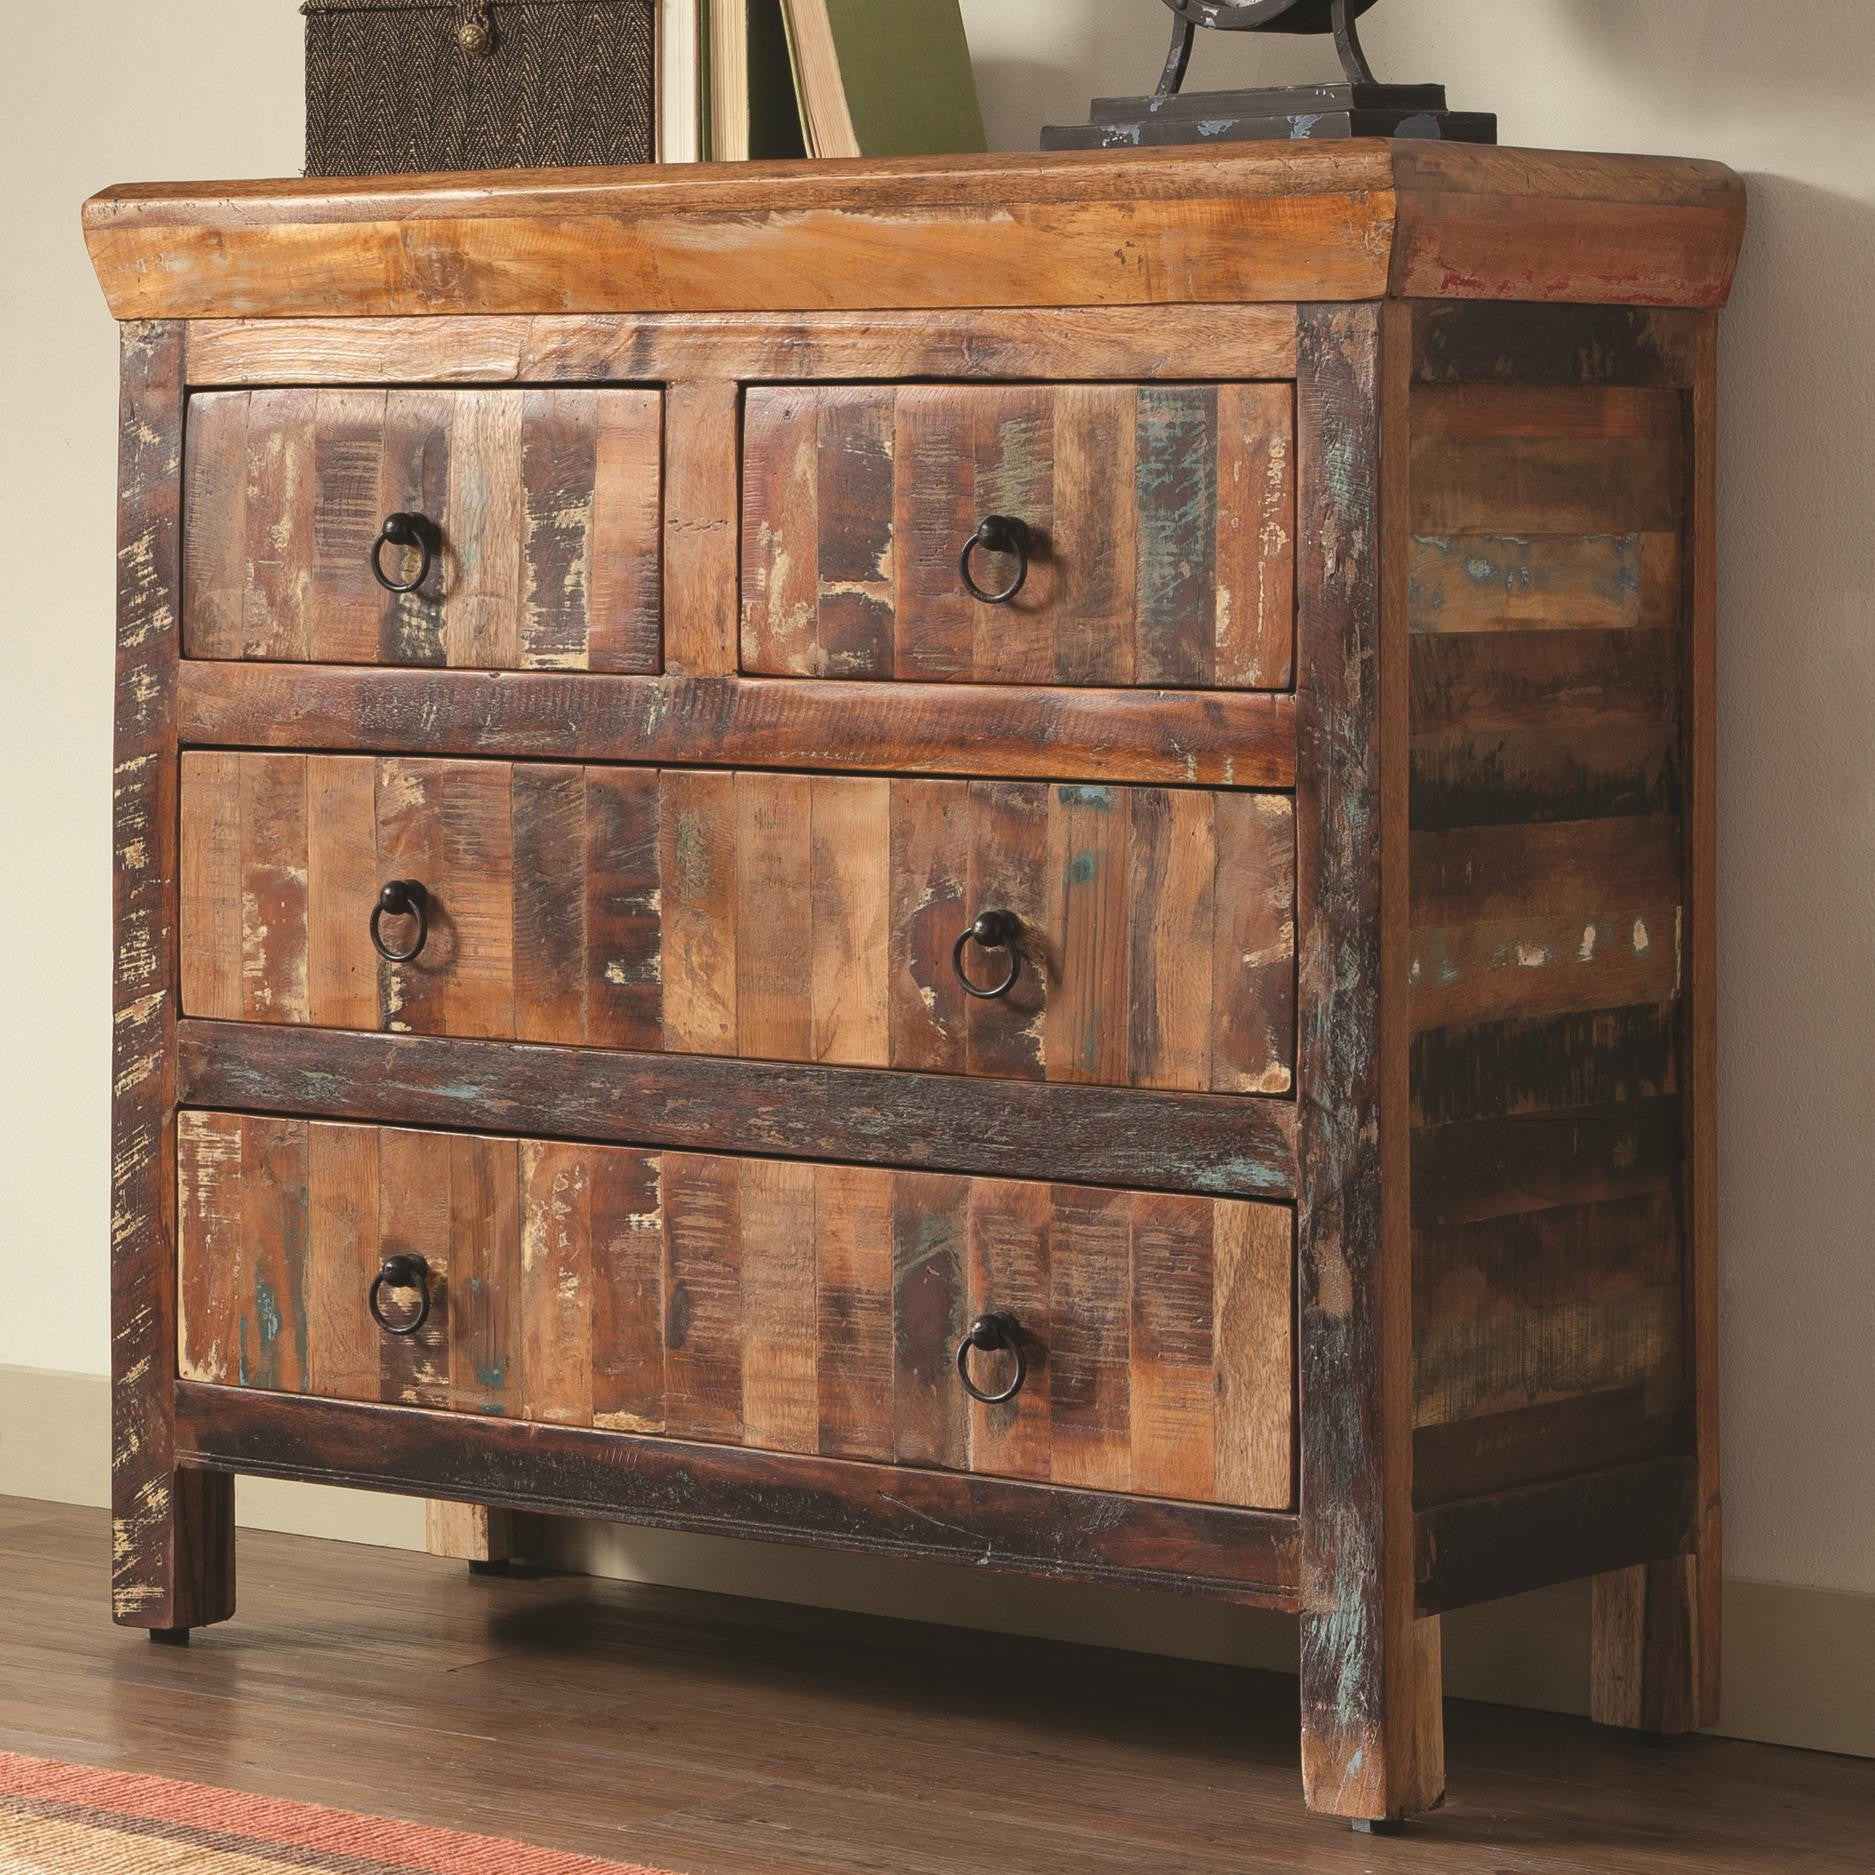 Rustic 4 Drawer Reclaimed Wood Accent Cabinet